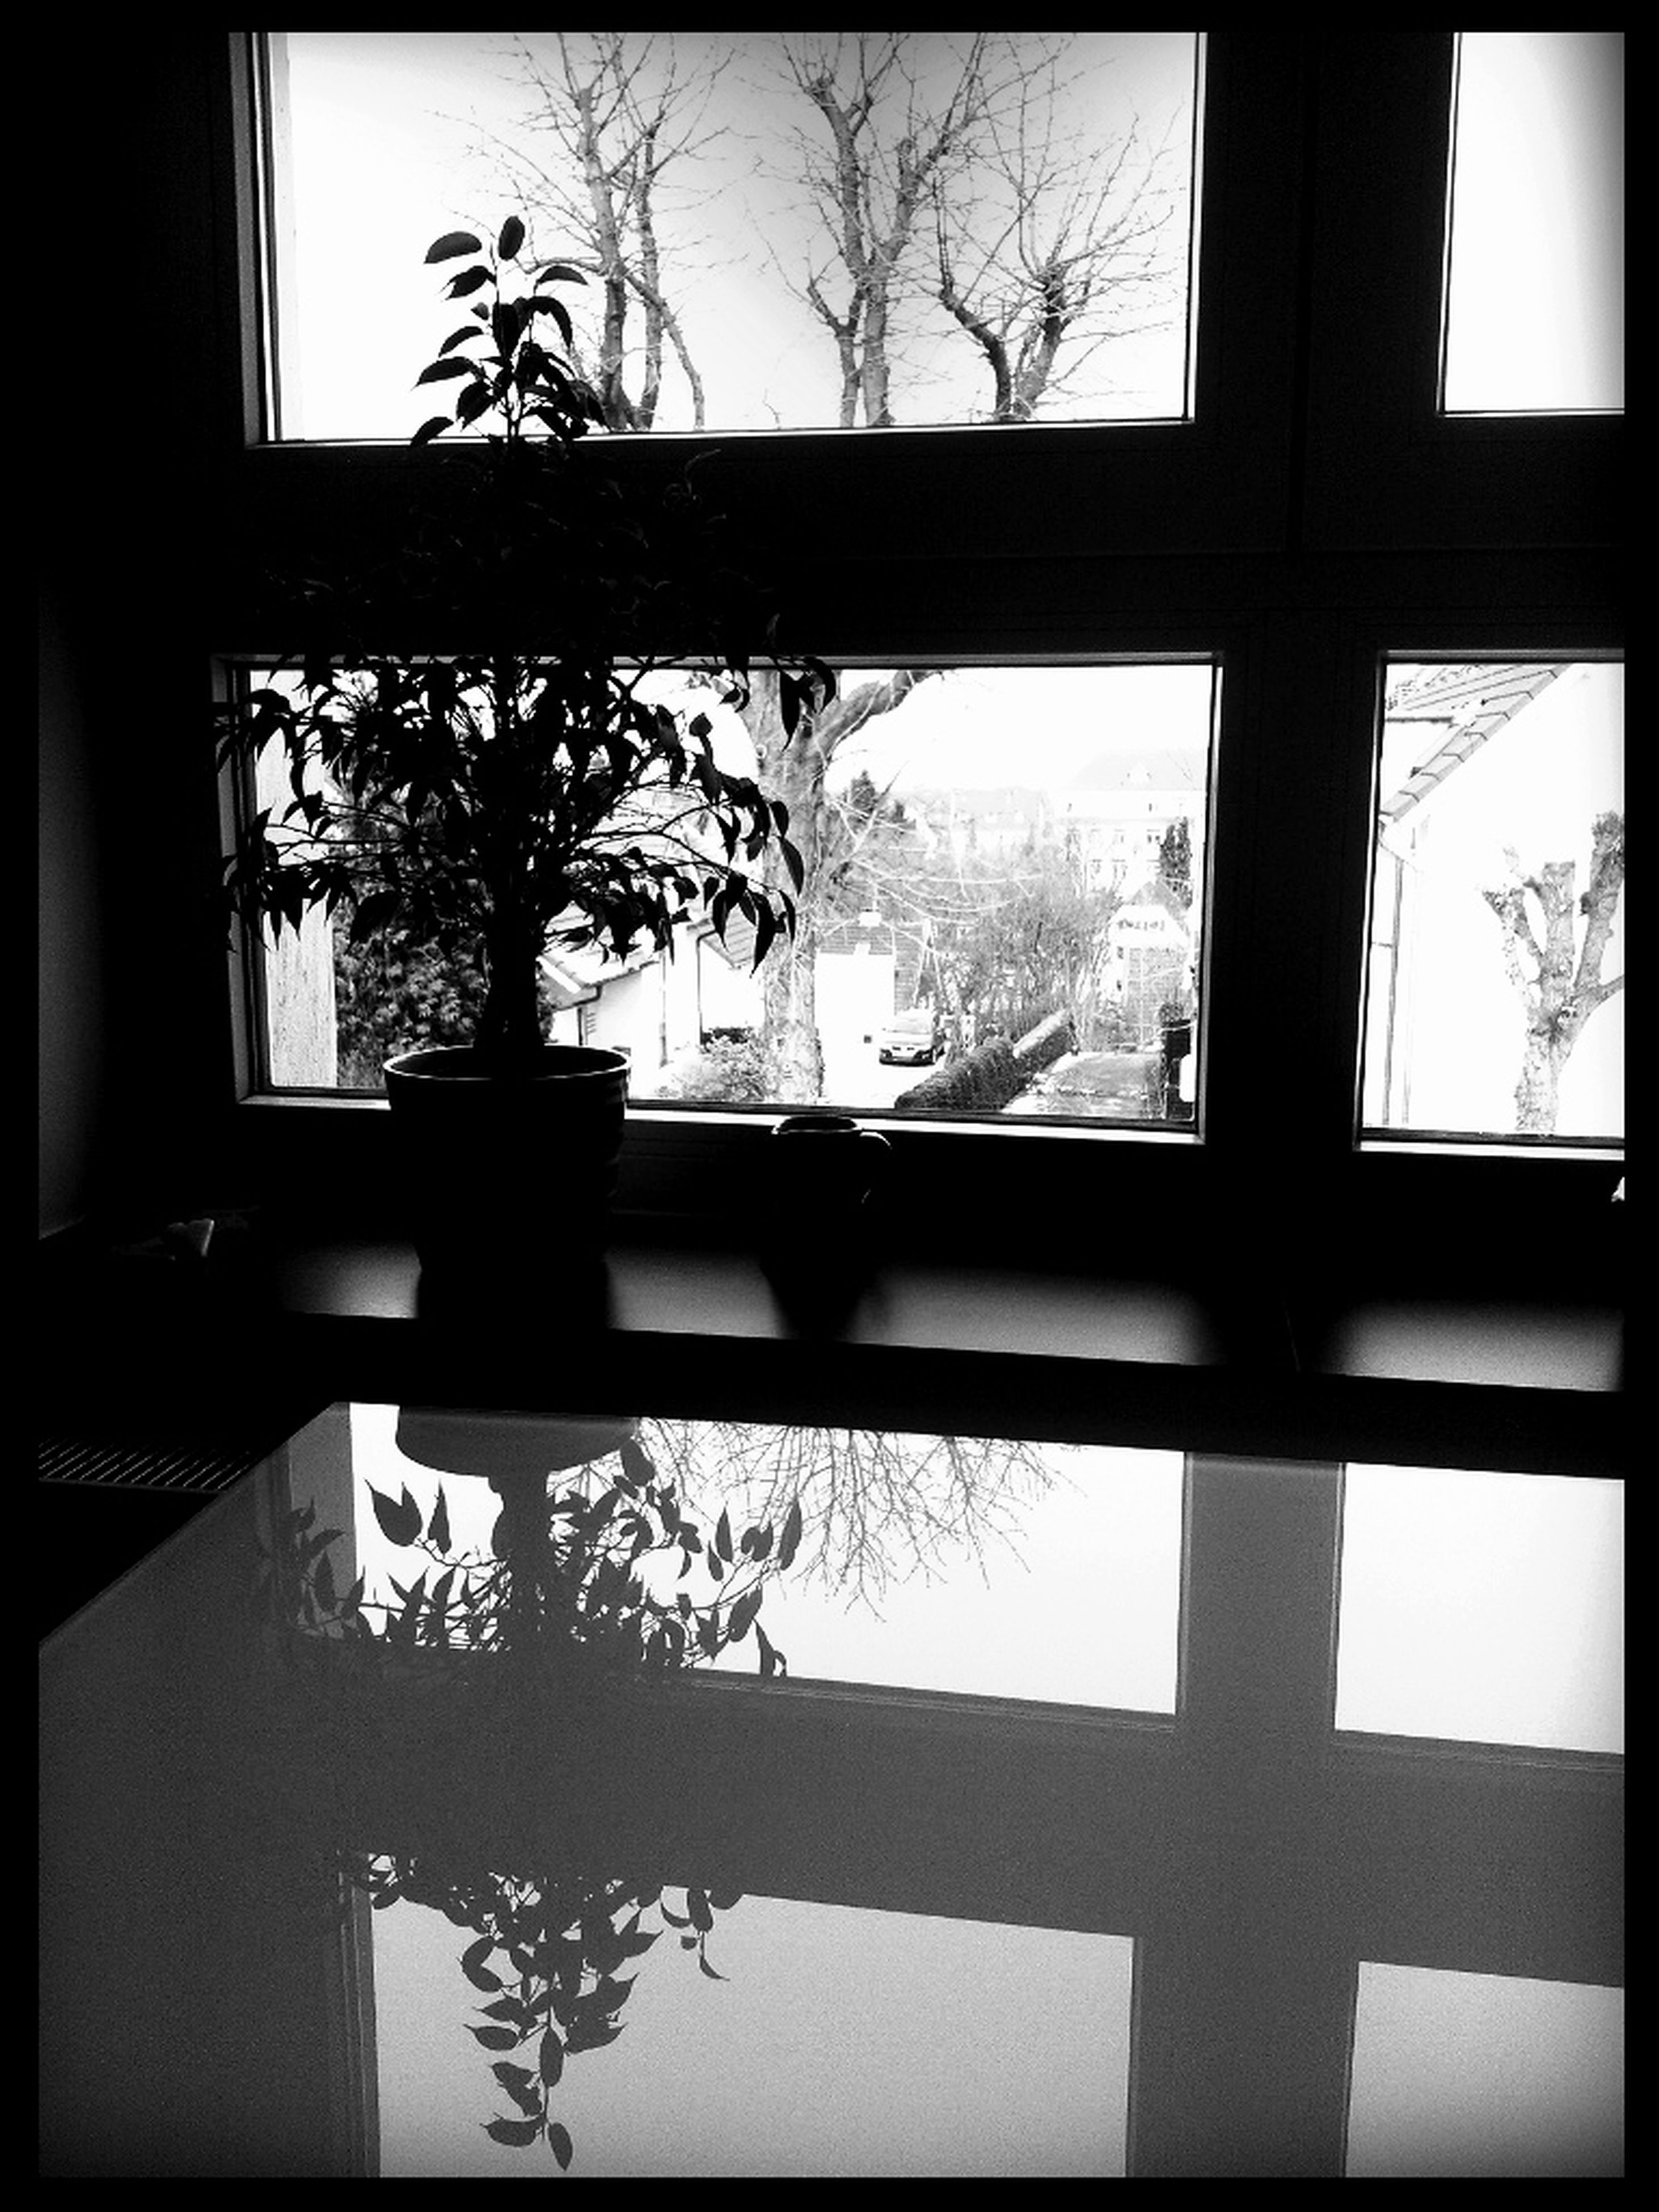 window, indoors, glass - material, transparent, tree, architecture, built structure, building exterior, window sill, house, glass, silhouette, bare tree, home interior, looking through window, reflection, growth, day, residential structure, branch